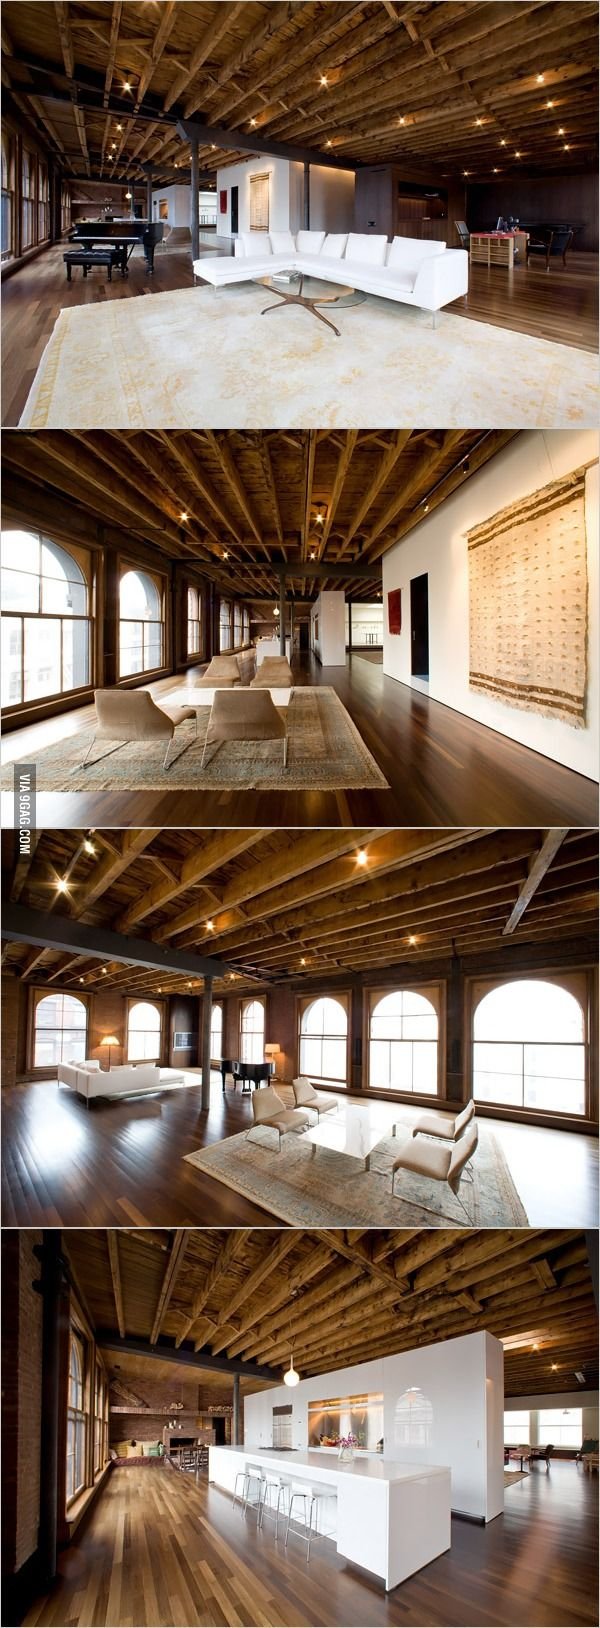 Urban loft style apartment for big family in new york city - What A 7 000 Sq Ft Loft In New York Looks Like